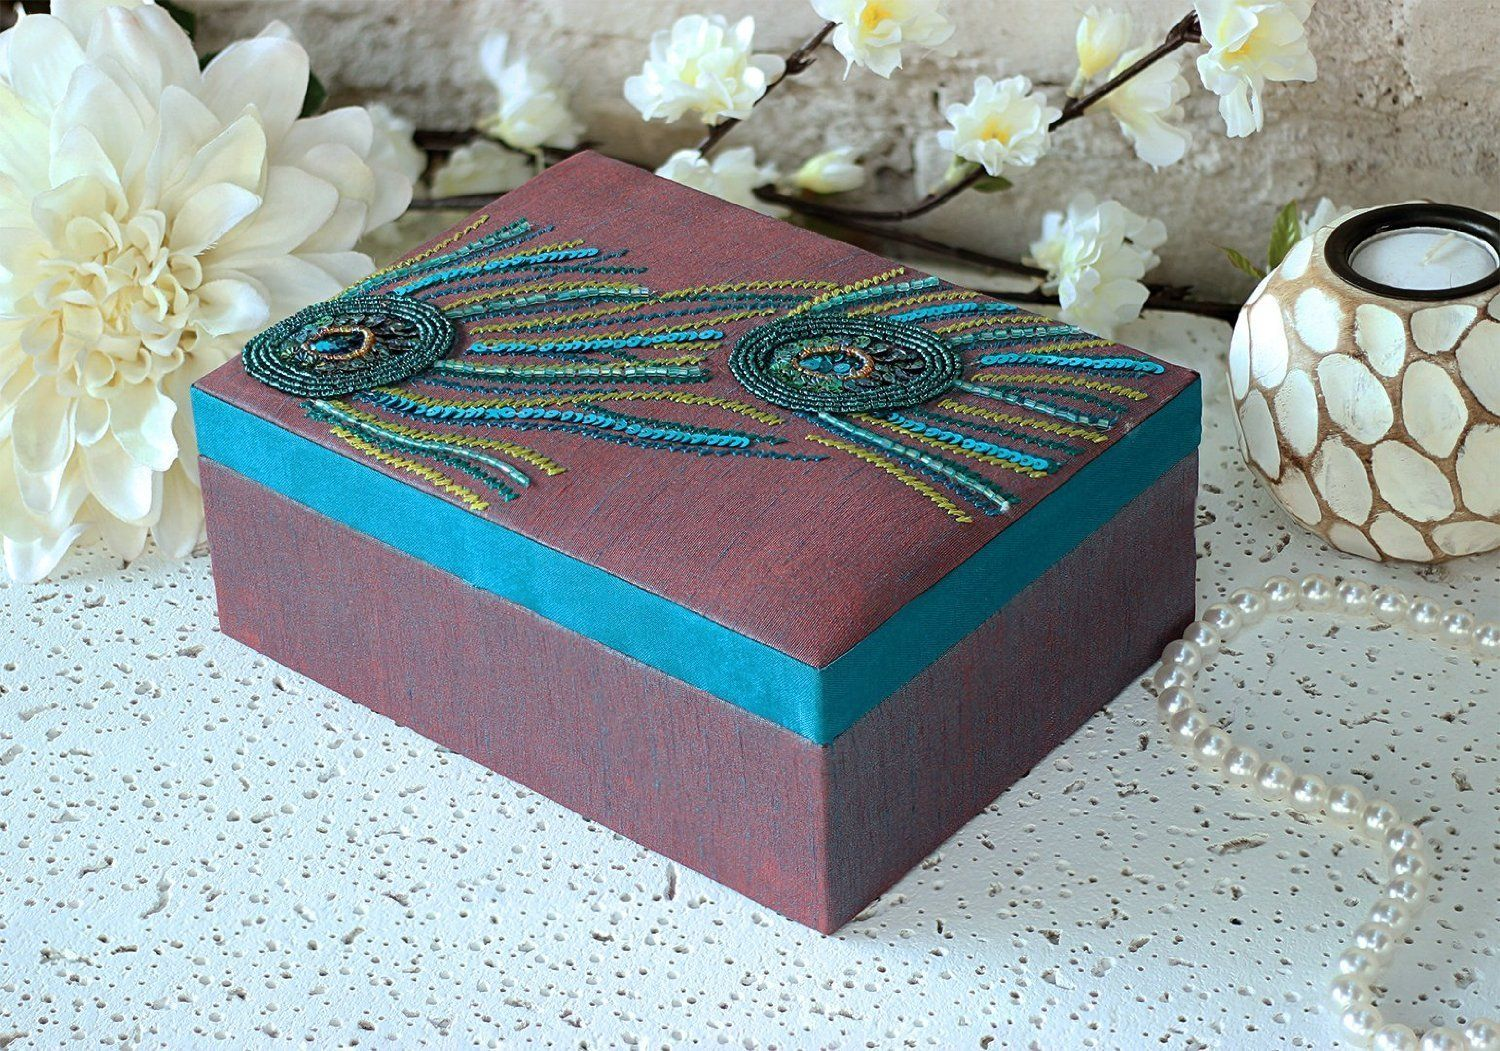 Amazoncom Delicately Hand Embroidered Jewelry Box with a Silk